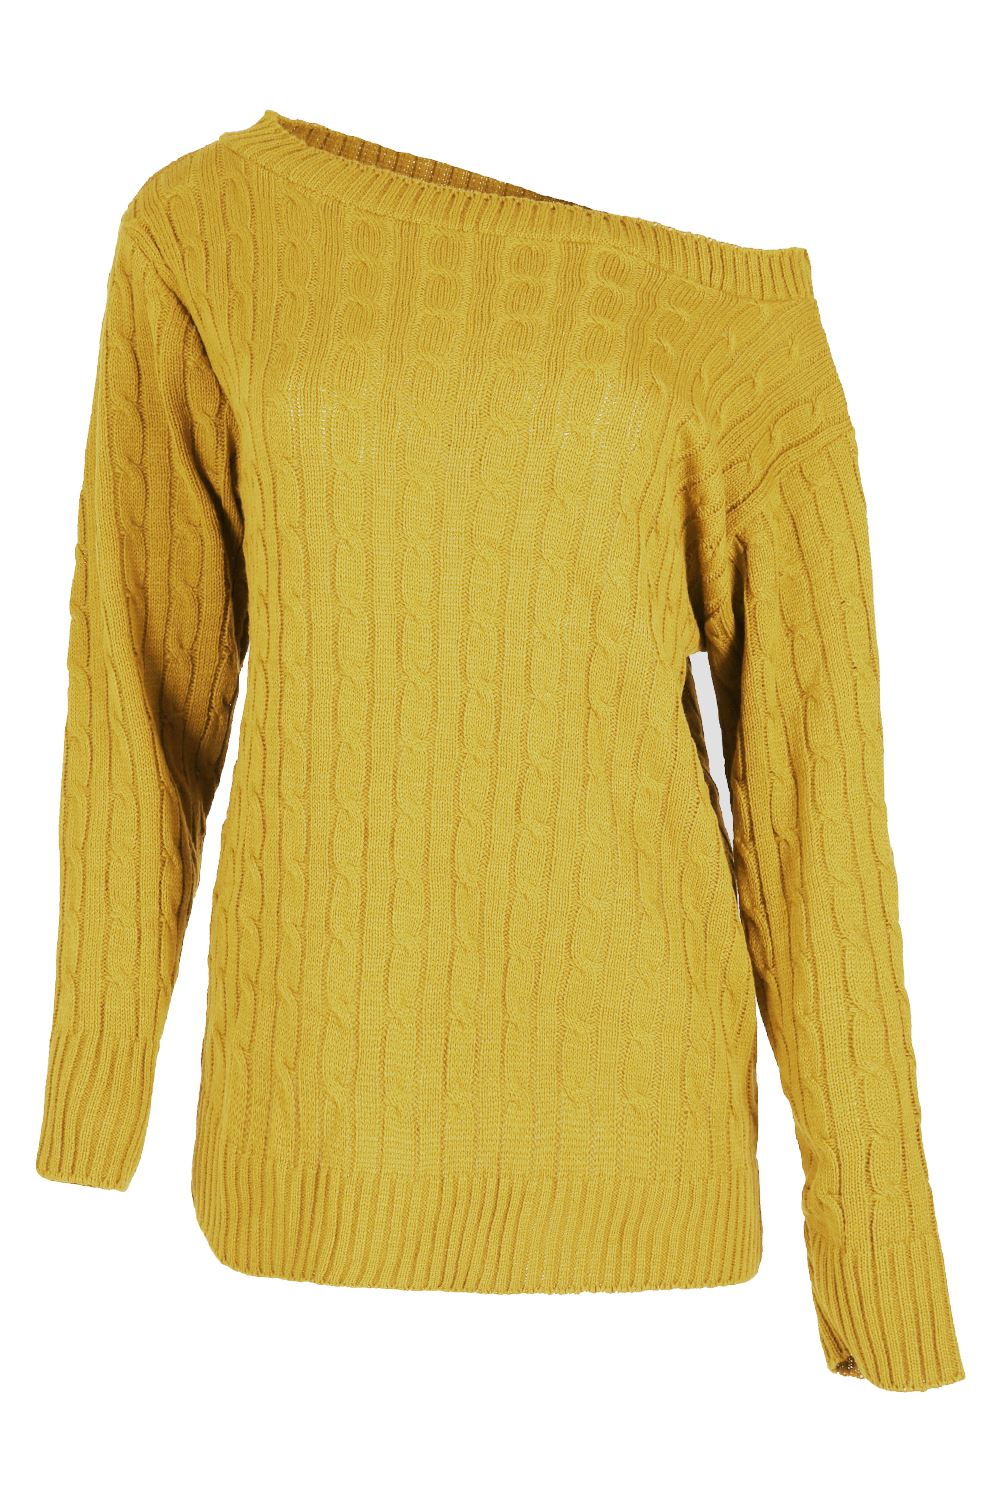 Womens-Ladies-Off-The-Shoulder-Chunky-Knitted-Oversized-Baggy-Sweater-Jumper-Top